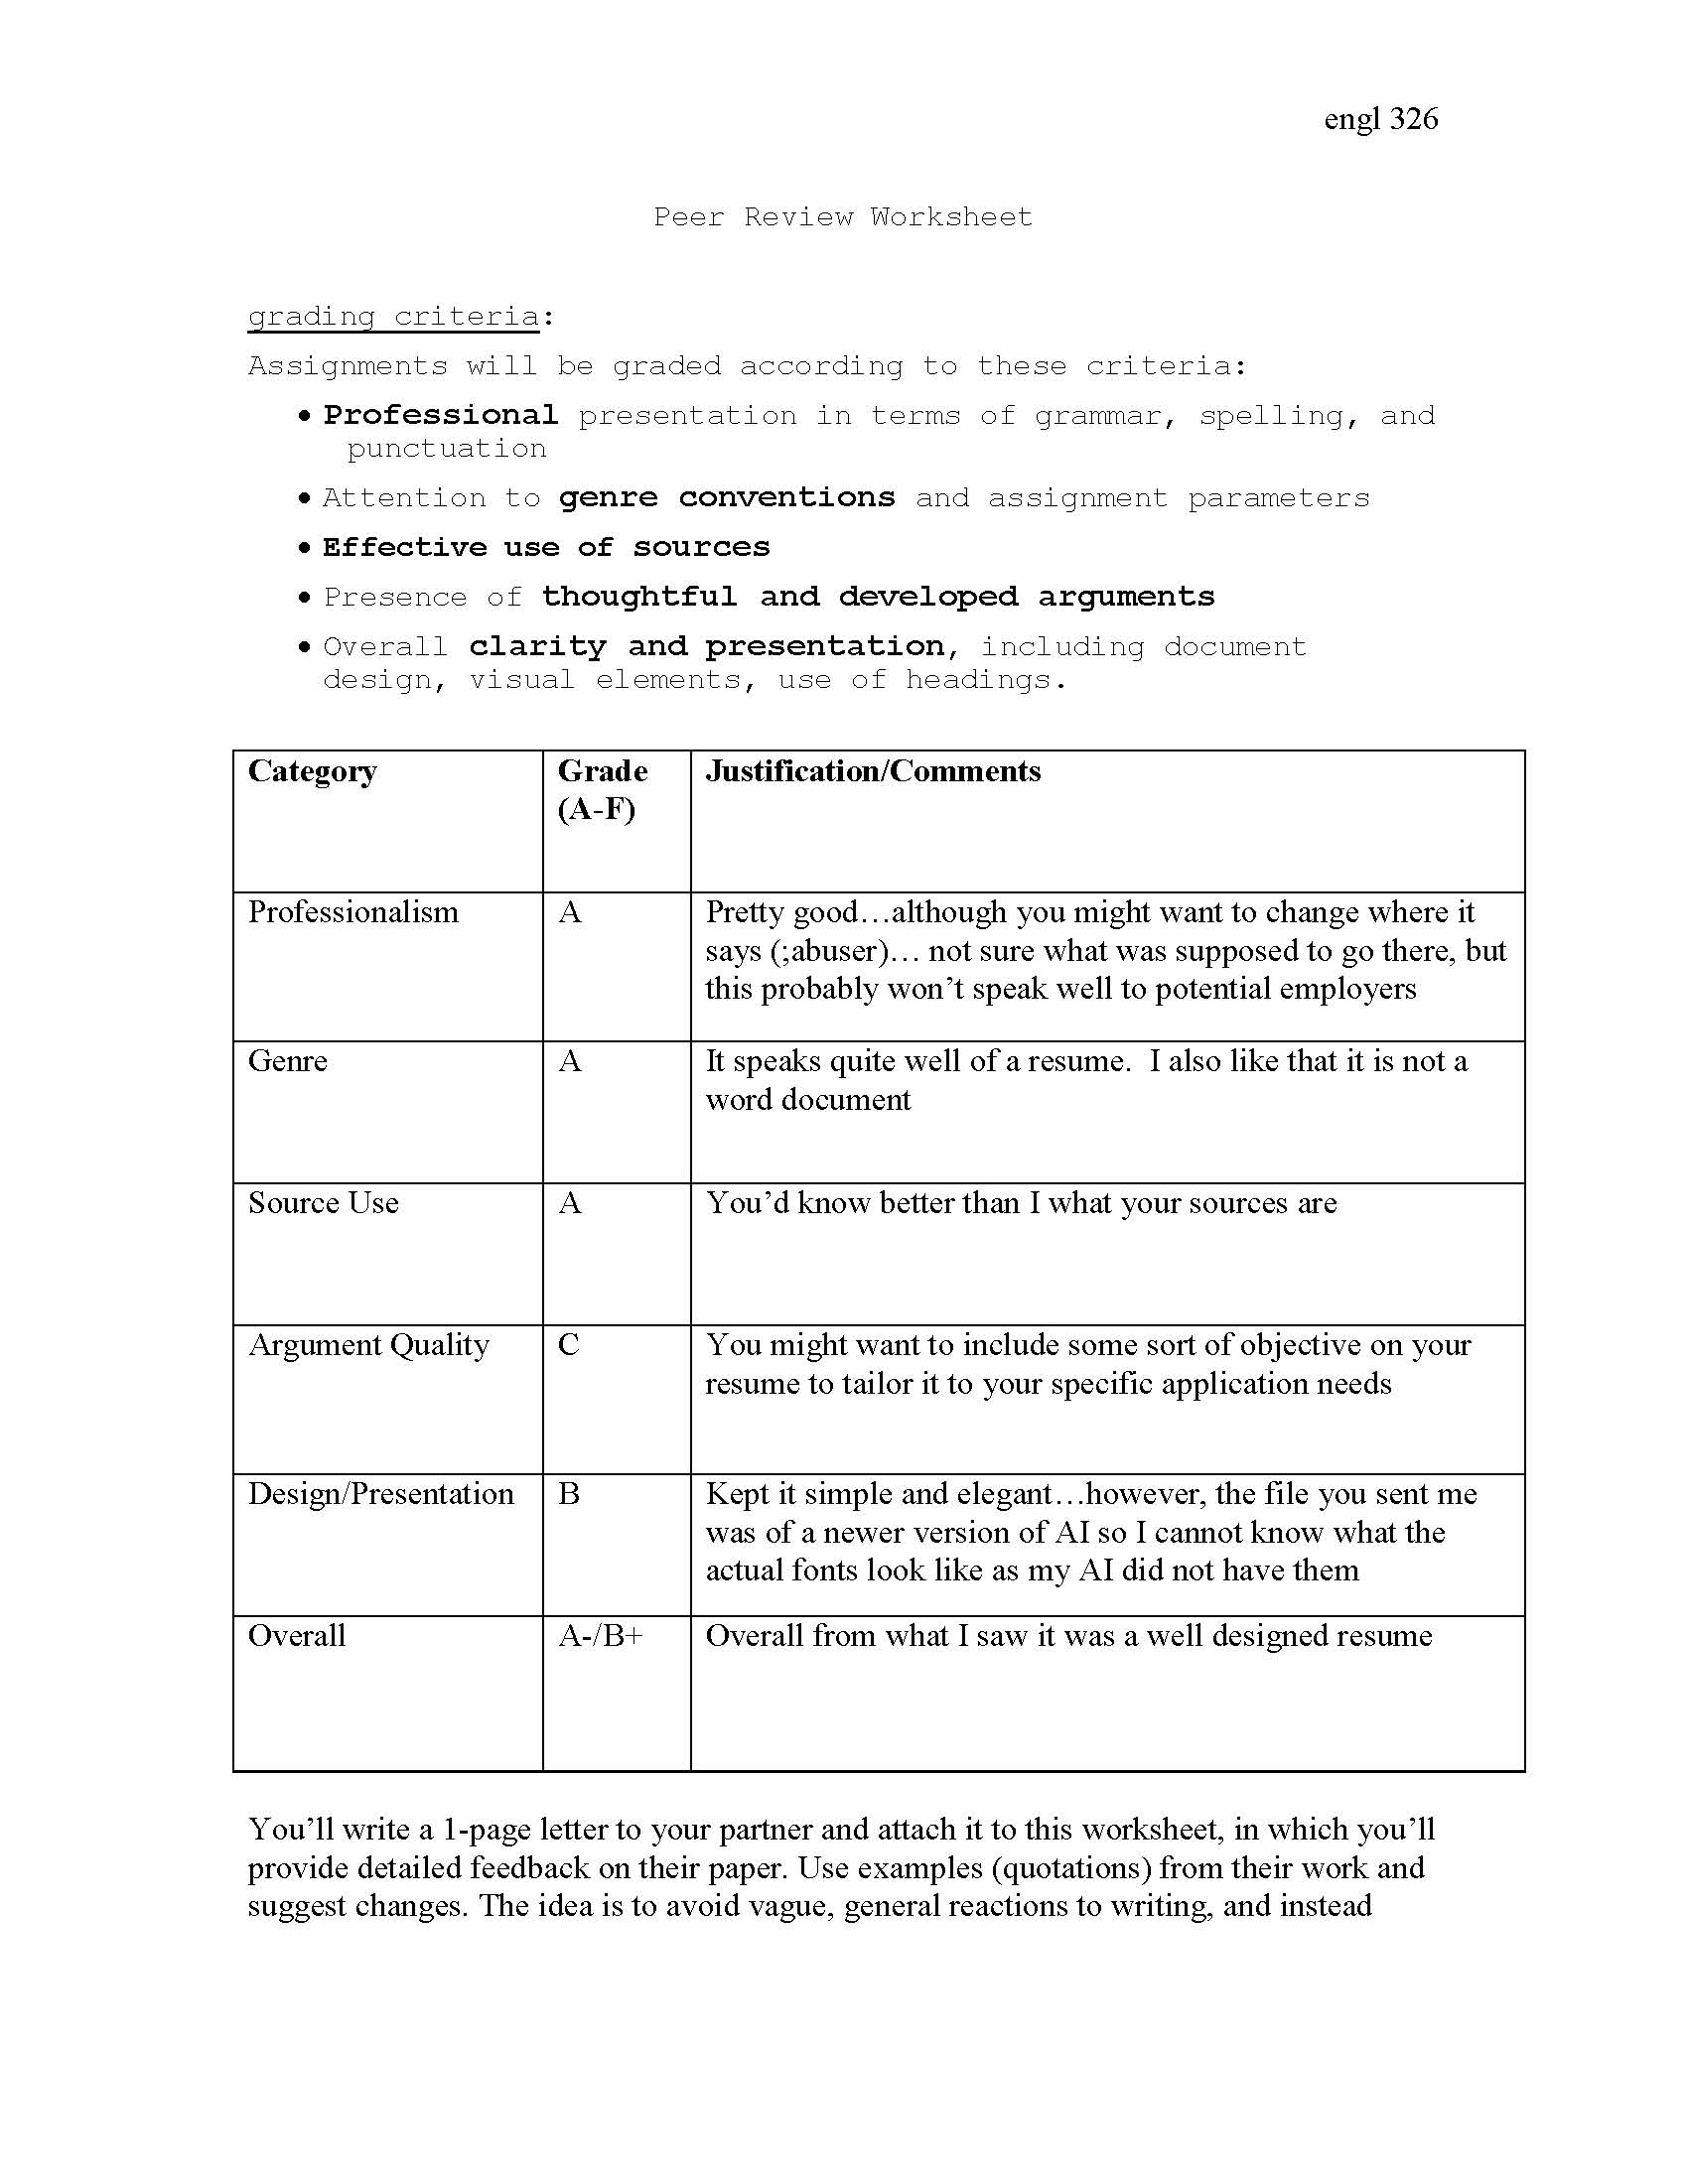 Peer Support Worksheet